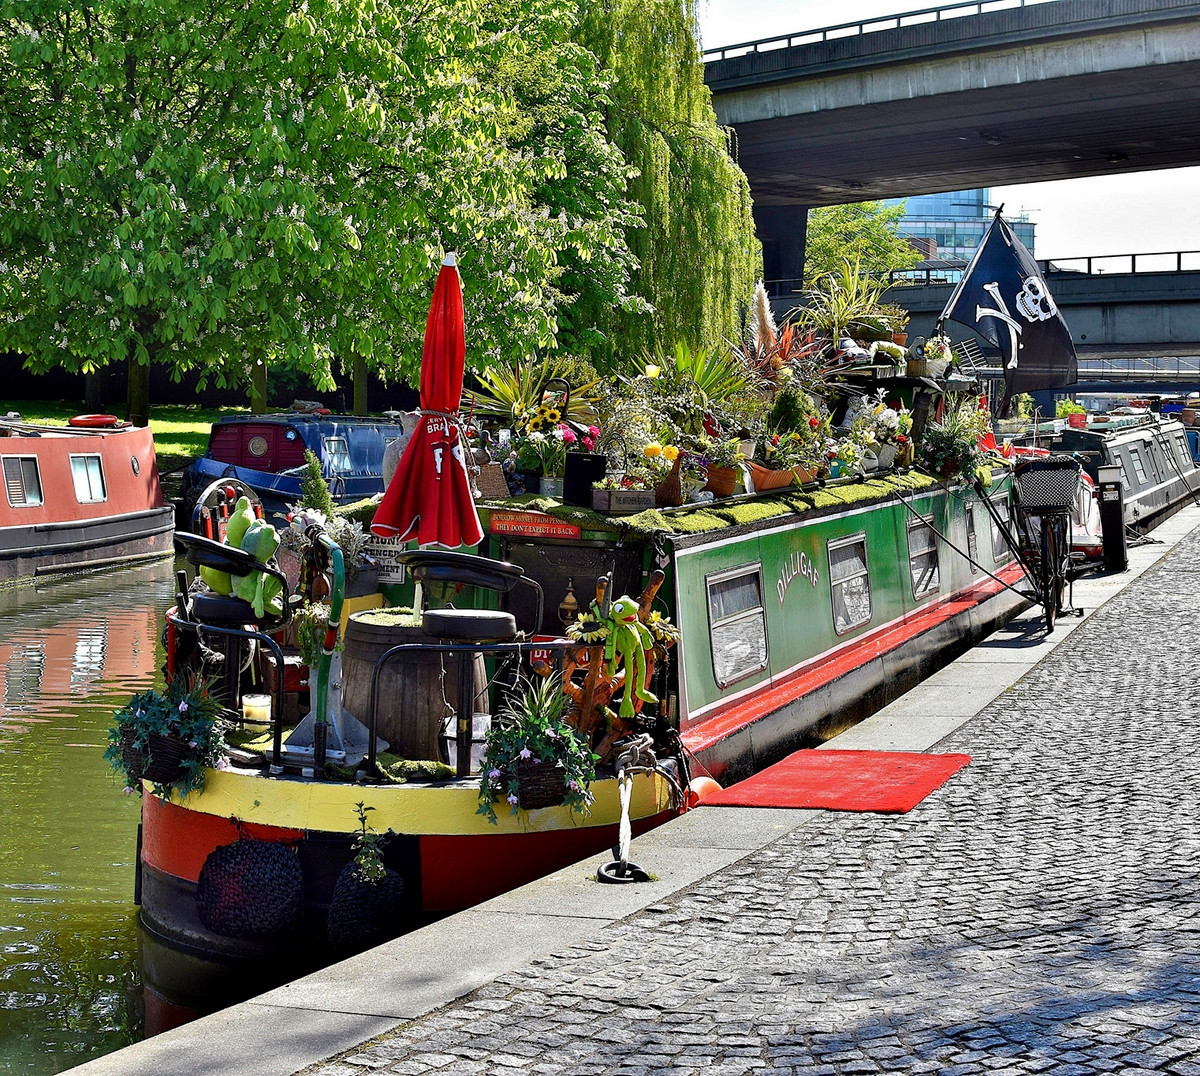 Narrowboats at the Paddington branch of the Grand Union Canal